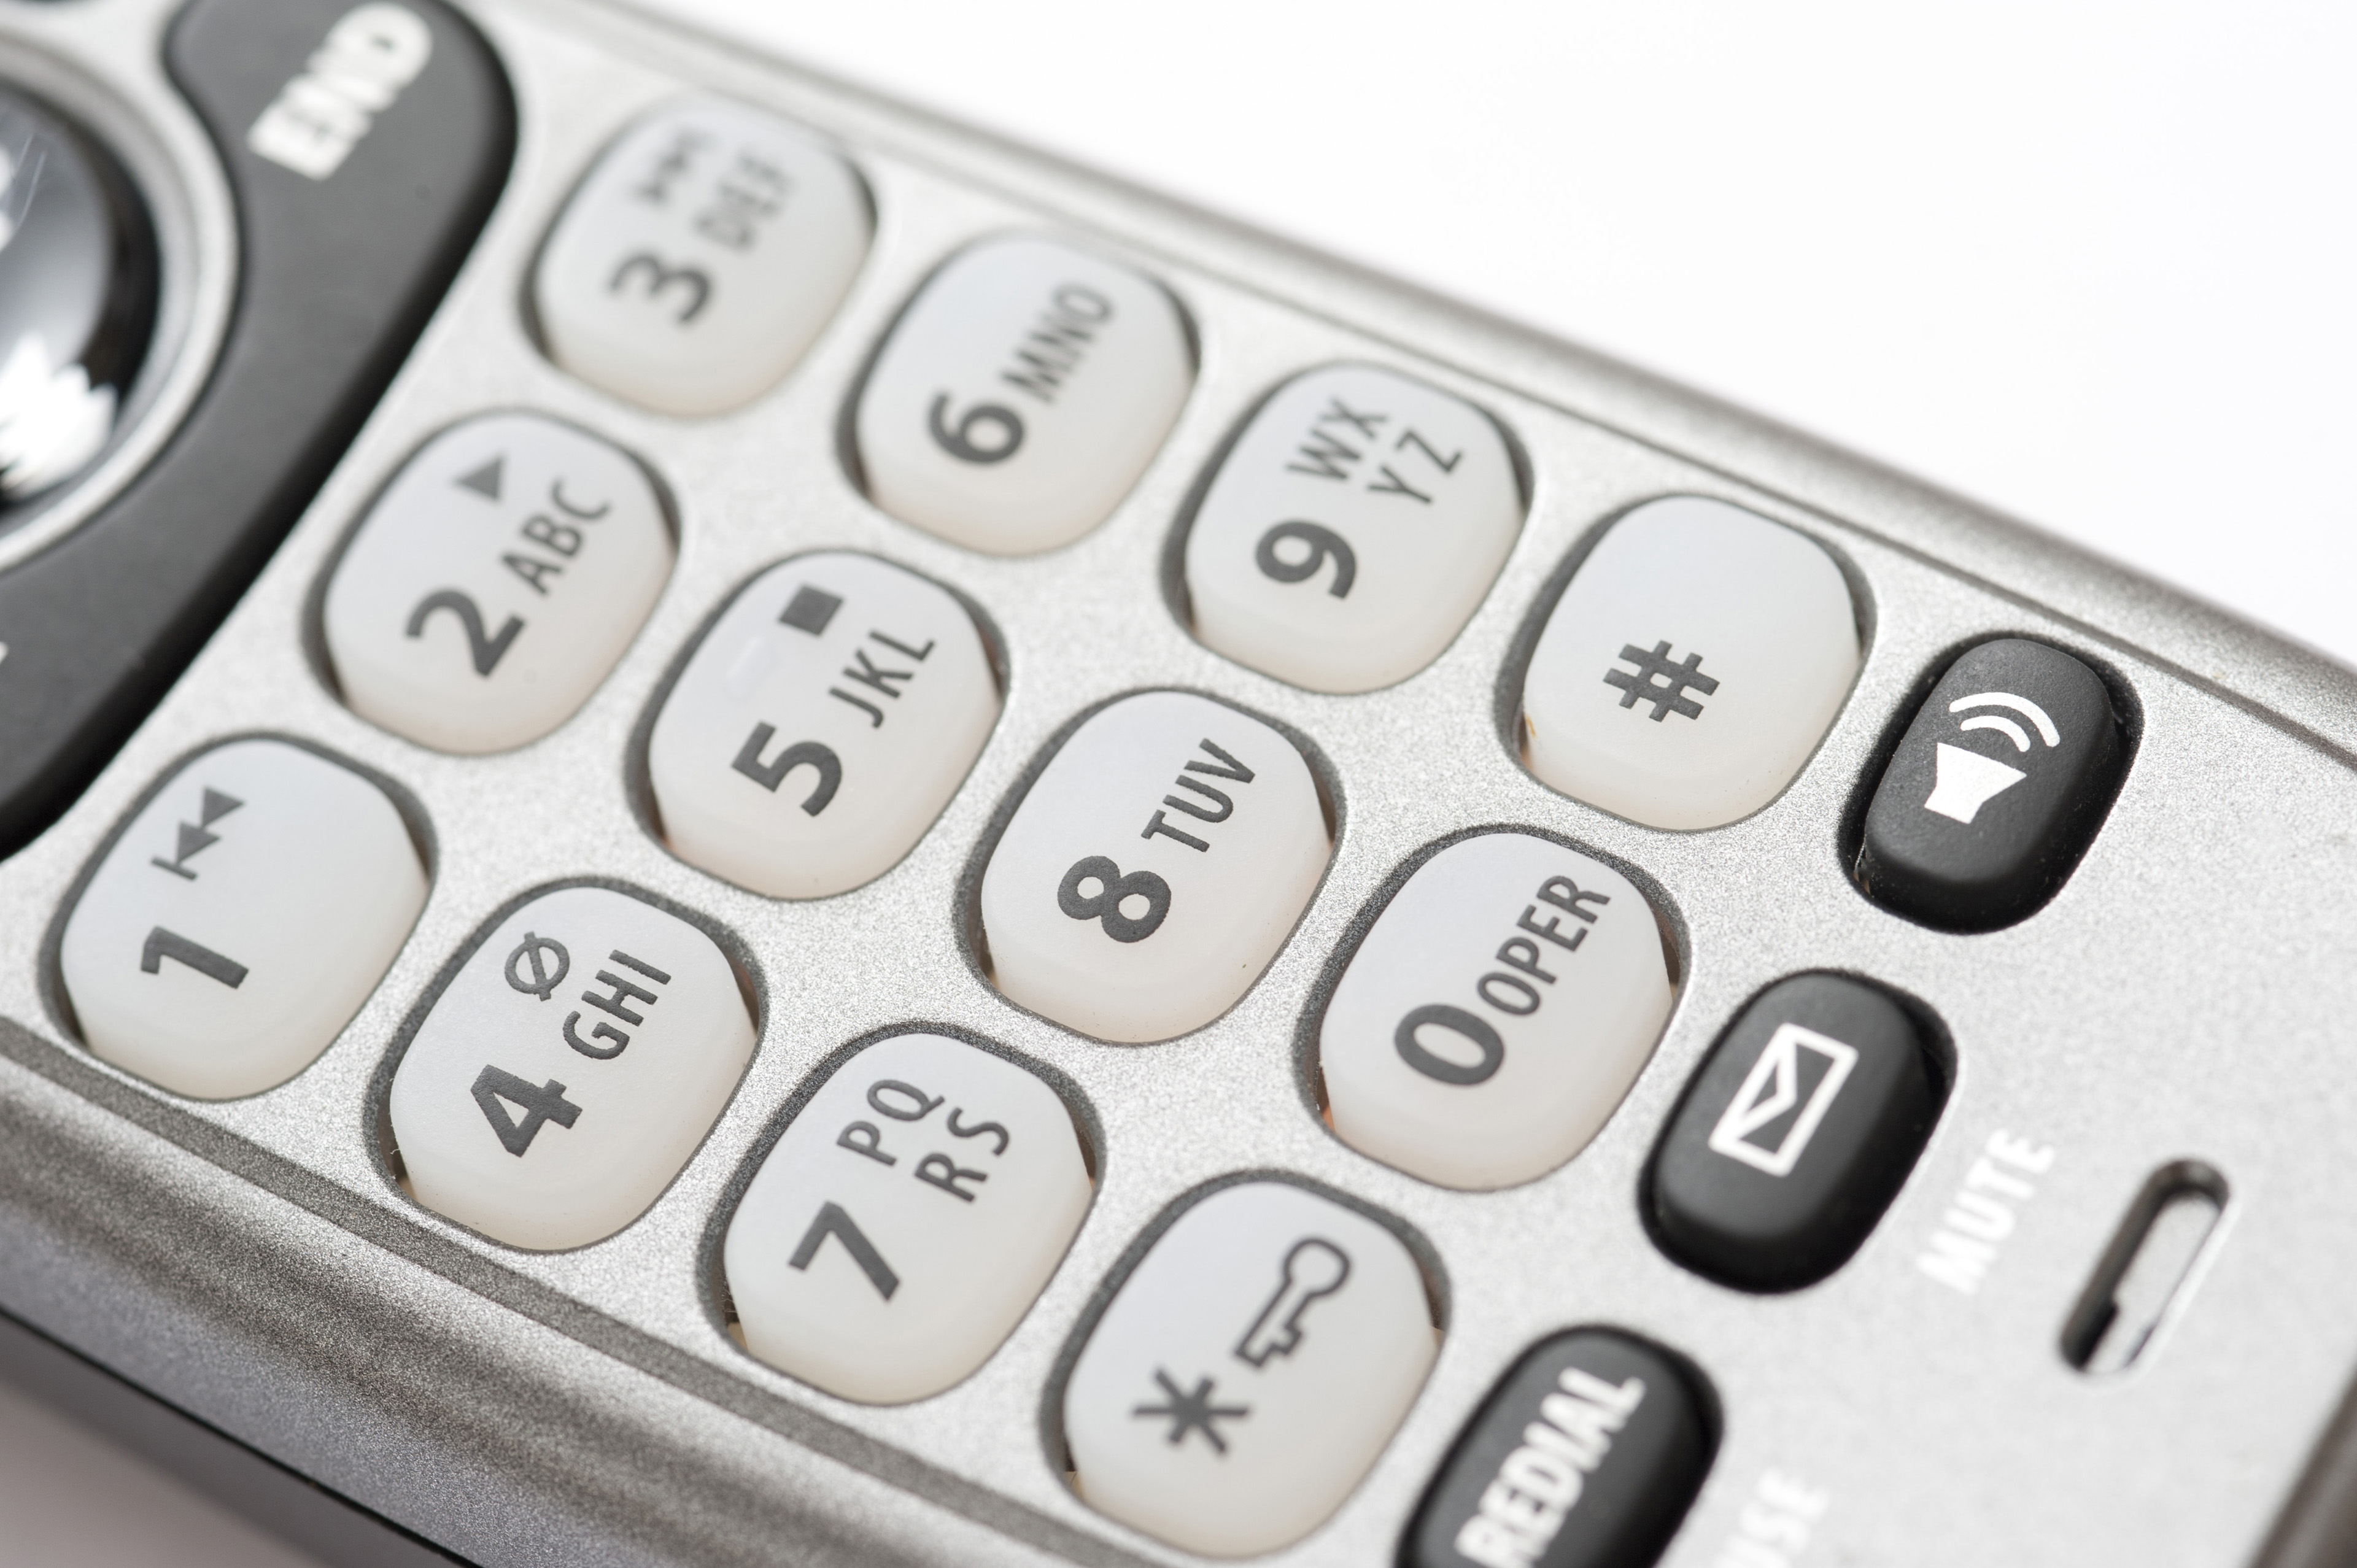 Close up of the alphanumeric keypad and function buttons on a telephone handset in a communications concept